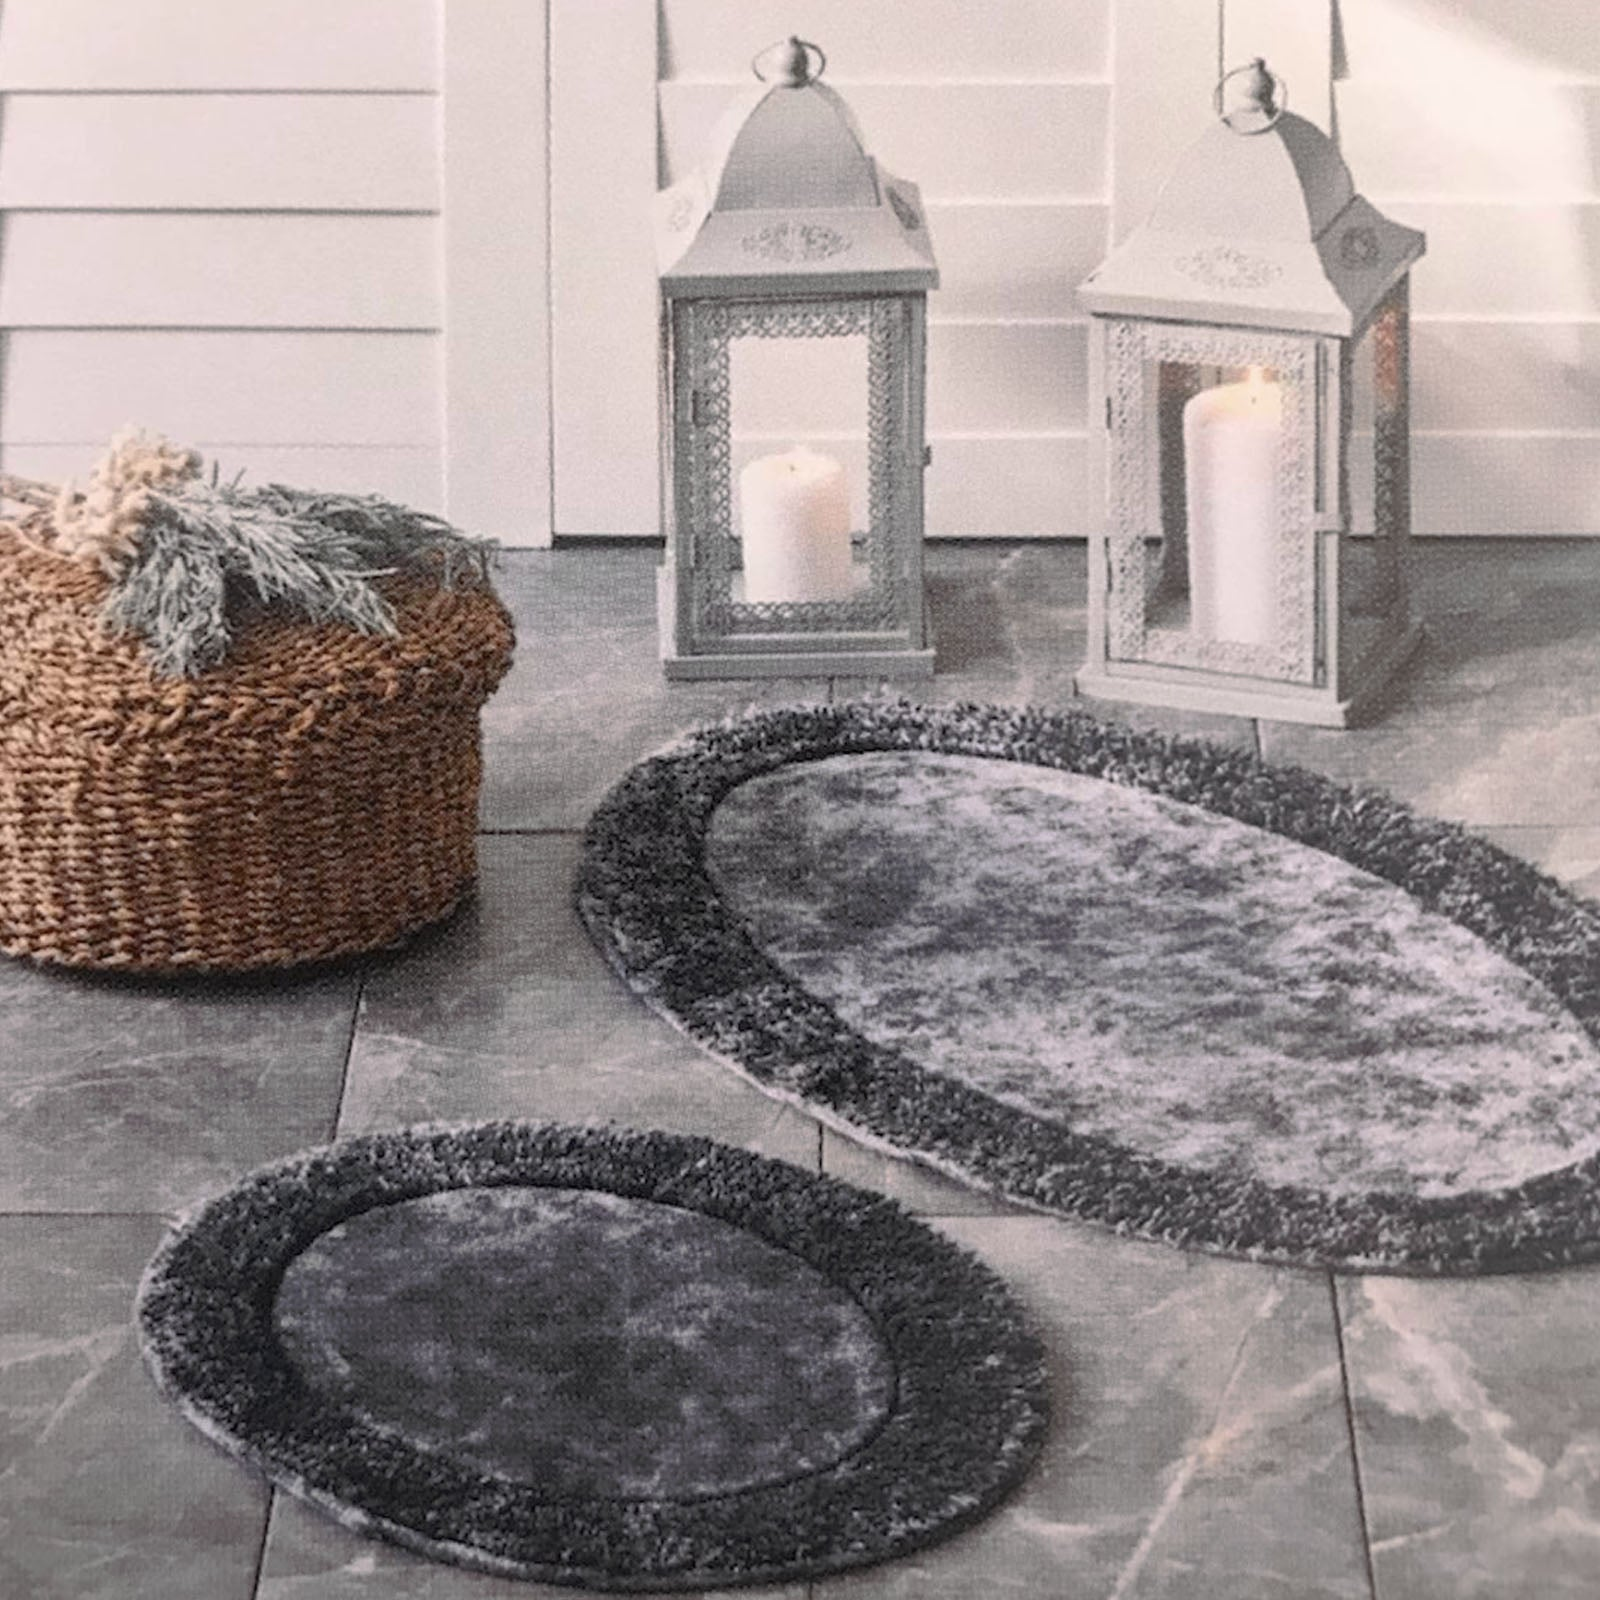 Karaca Home Barny Anthracite 2-Piece Bath Mat 200.17.01.0134 -  سجادة حمام كاراجا هوم بارني أنتراسيت قطعتان - Shop Online Furniture and Home Decor Store in Dubai, UAE at ebarza